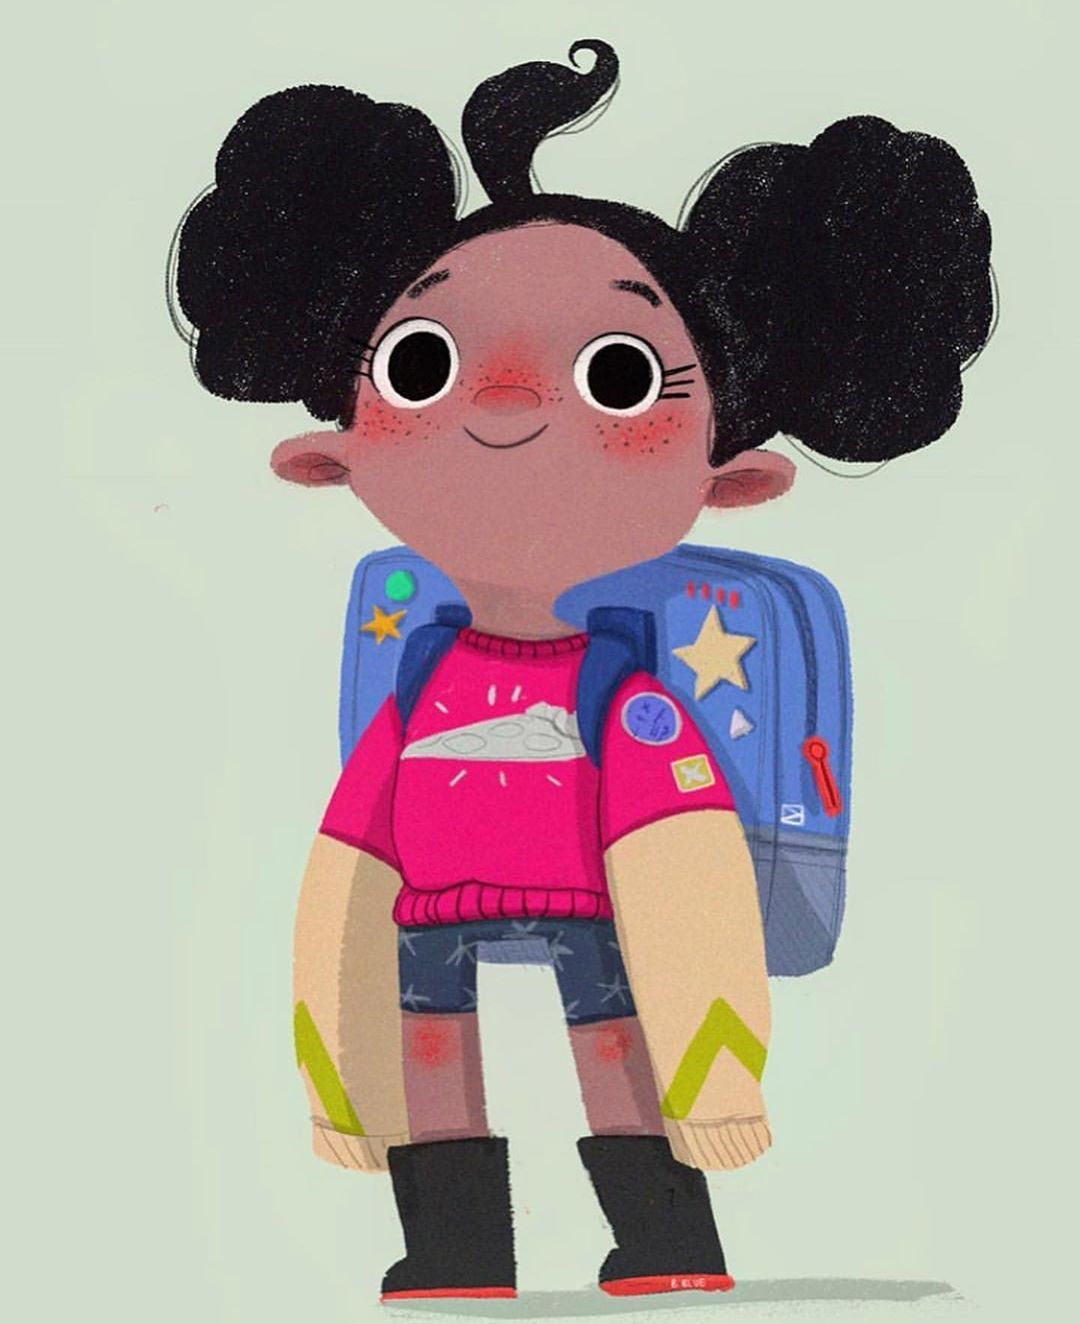 """Beatrice Blue on Instagram: """"⭐️Here's a little girl I designed more than 1 year ago for a super cool project that I didn't get in the end- swipe to see more of her! - -…"""""""